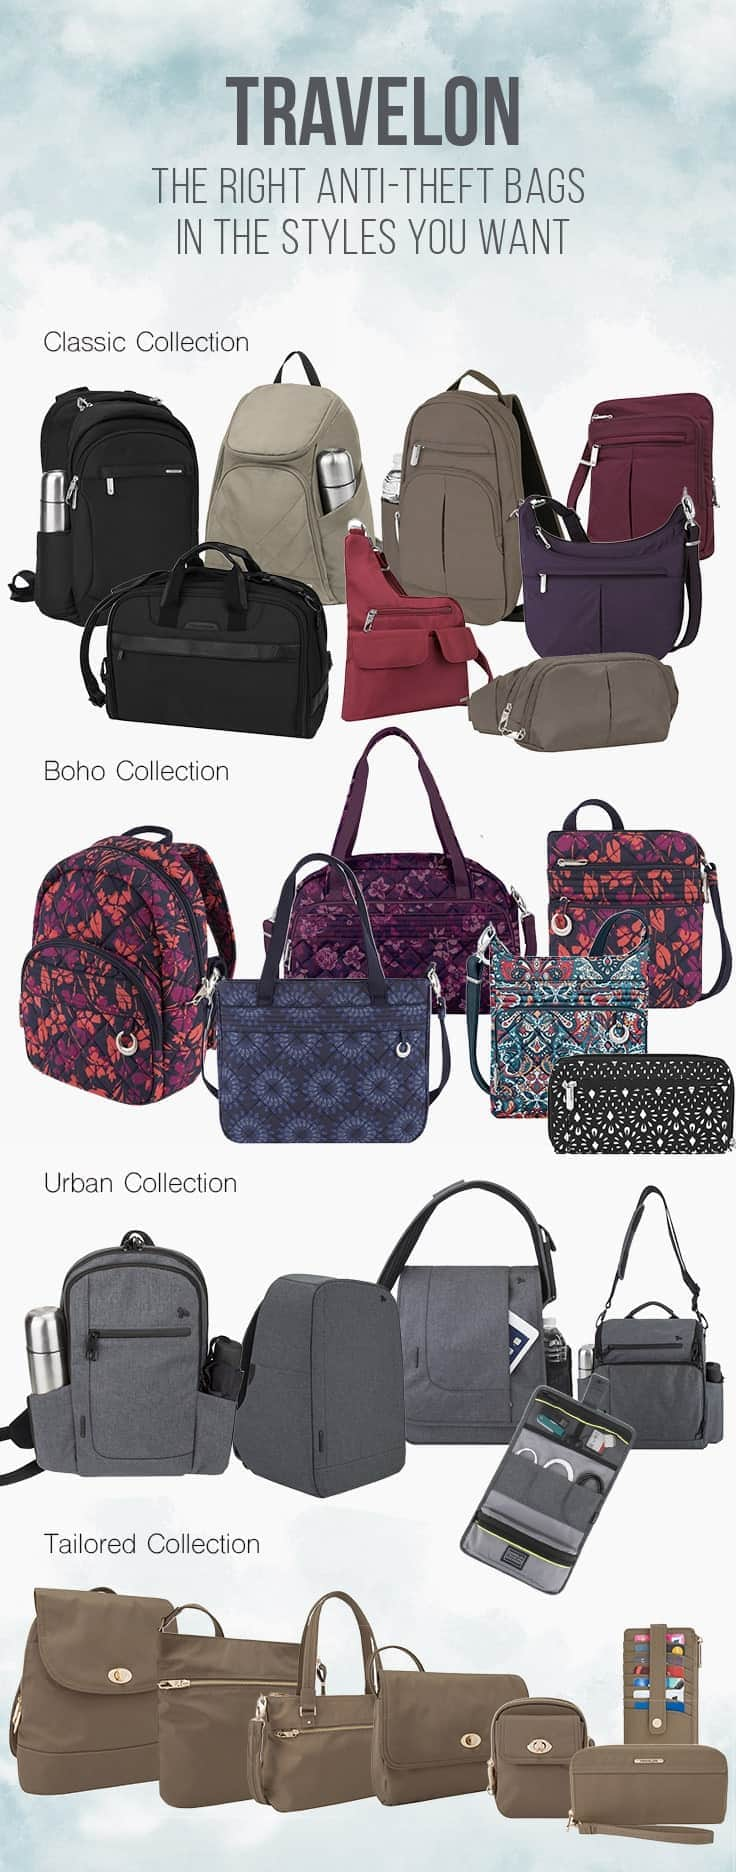 For travel safety and style Travelon anti-theft bags have it all. They feature styles for both men and women in a variety of bags from business cases, carry-on, totes, shoulder bags and clutches. Check out the current 2018 styles. | fashion | bags | travel gear | handbags | luggage | anti-theft | travel safety |